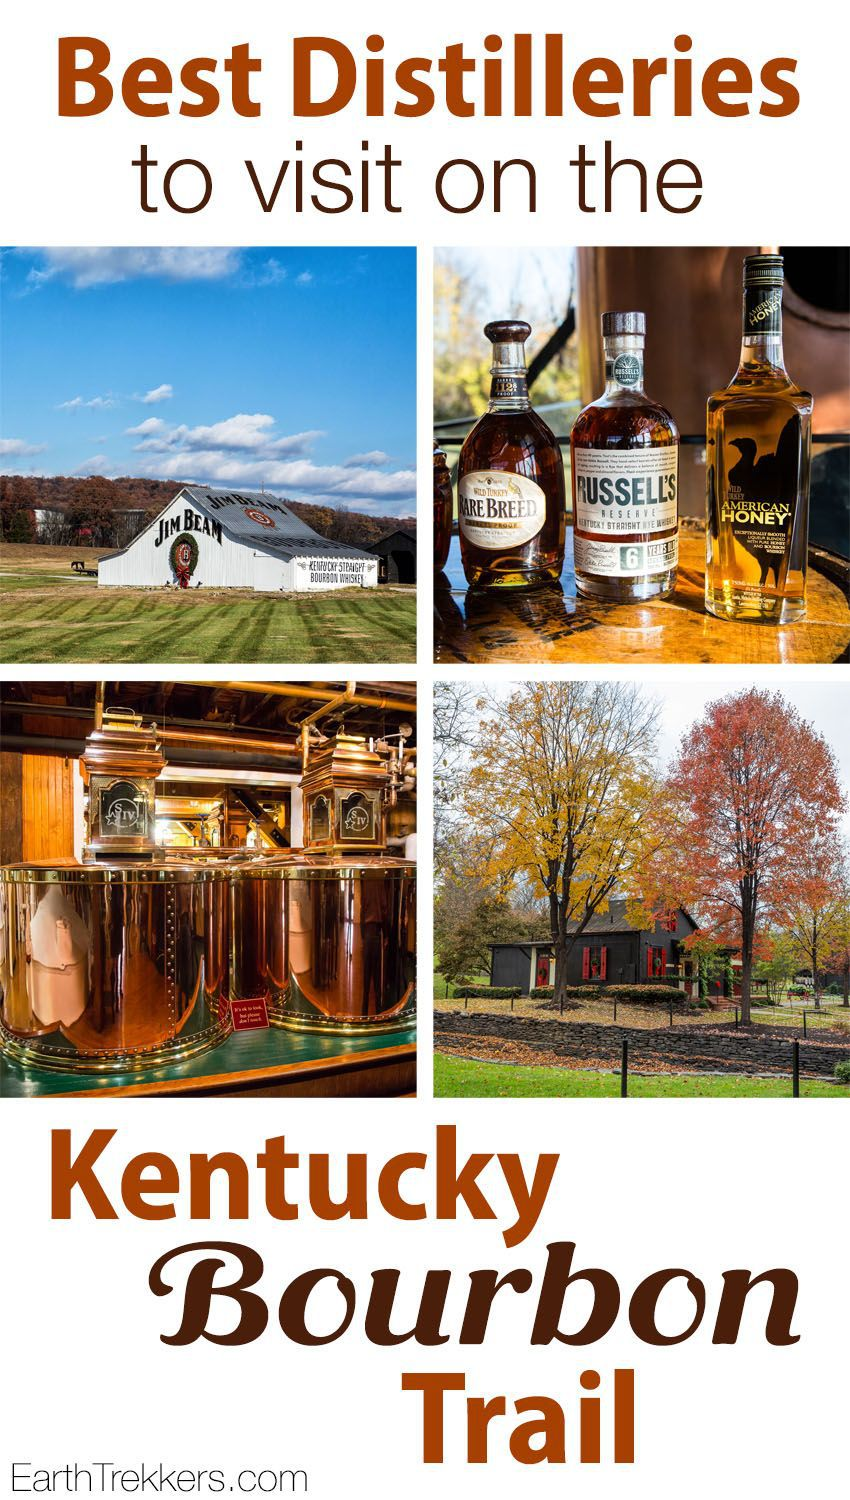 Kentucky Bourbon Trail best distilleries